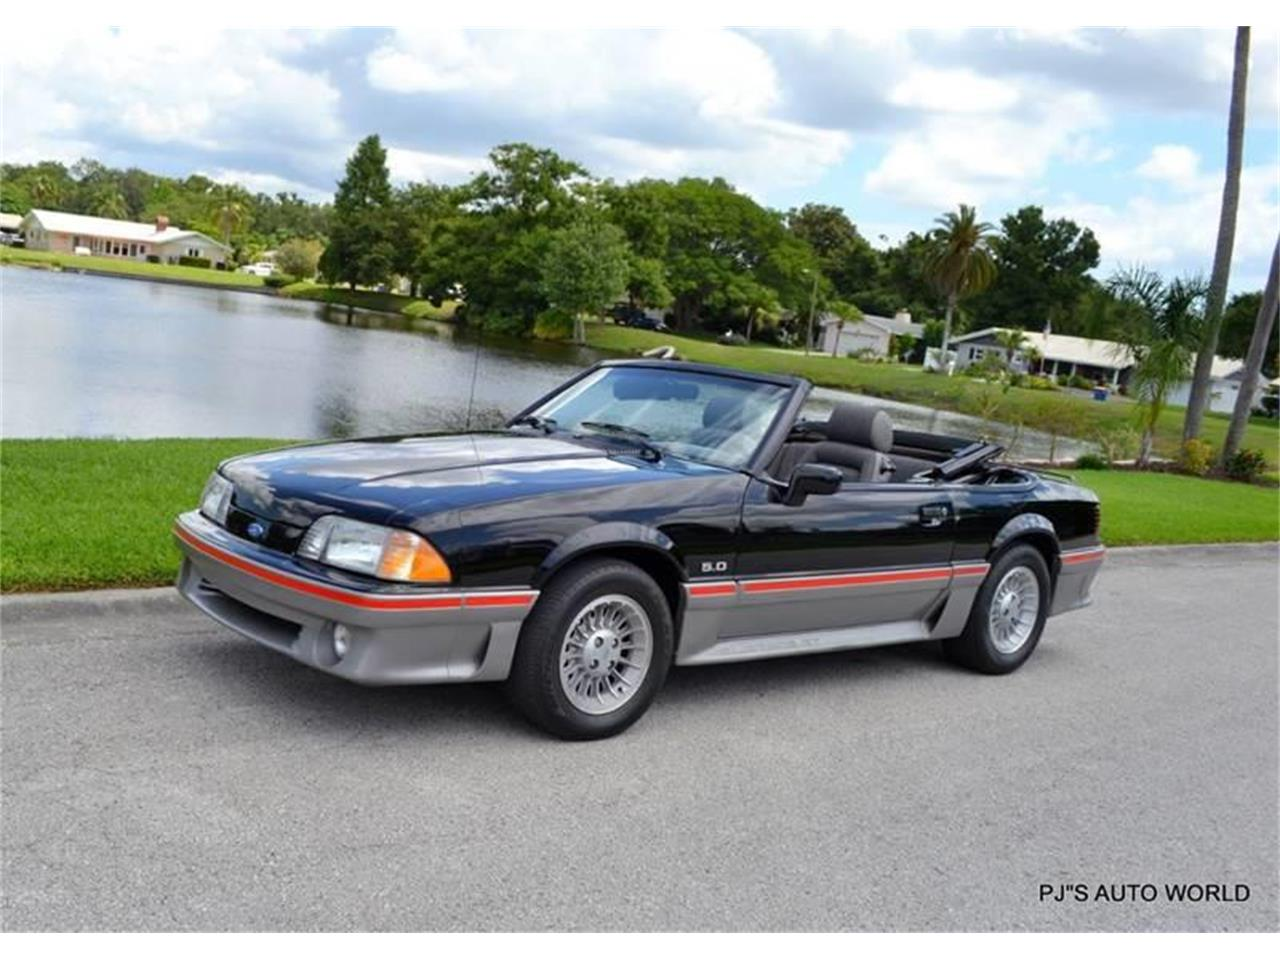 Large Picture of '89 Ford Mustang - $17,900.00 - NGI8